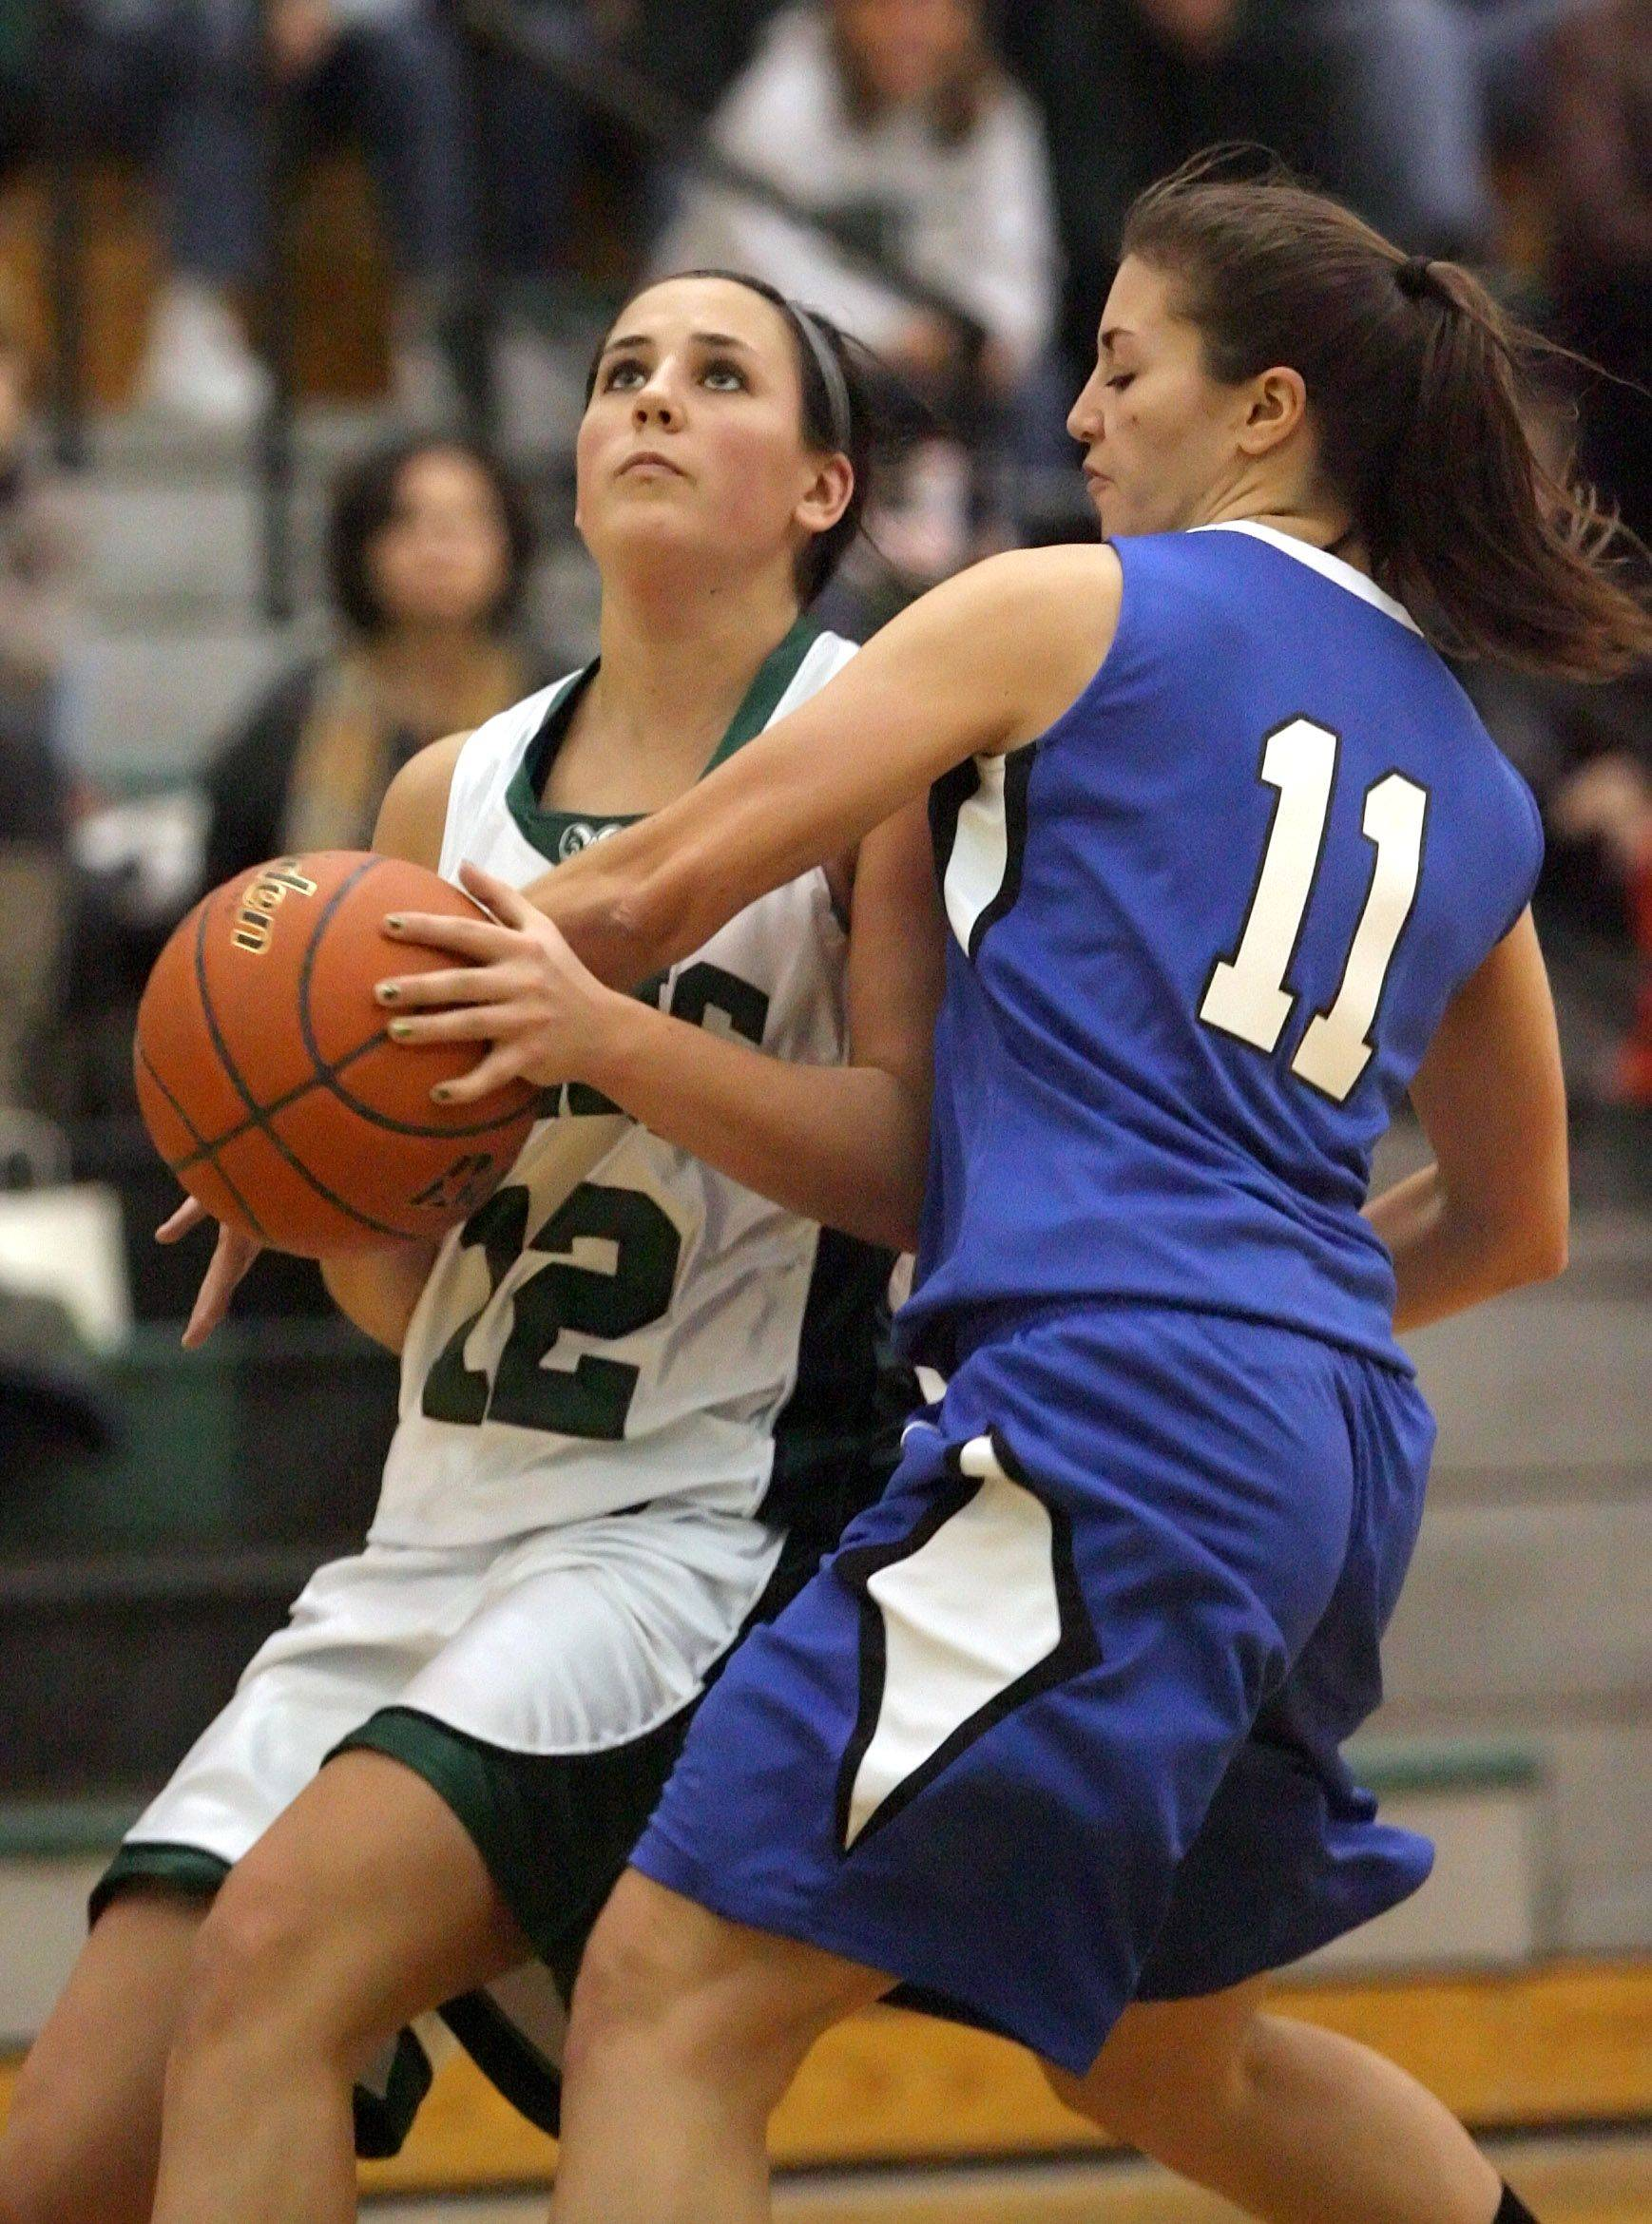 Grayslake Central's Claire Brennan, left, drives on Woodstock's Odessa Peters.